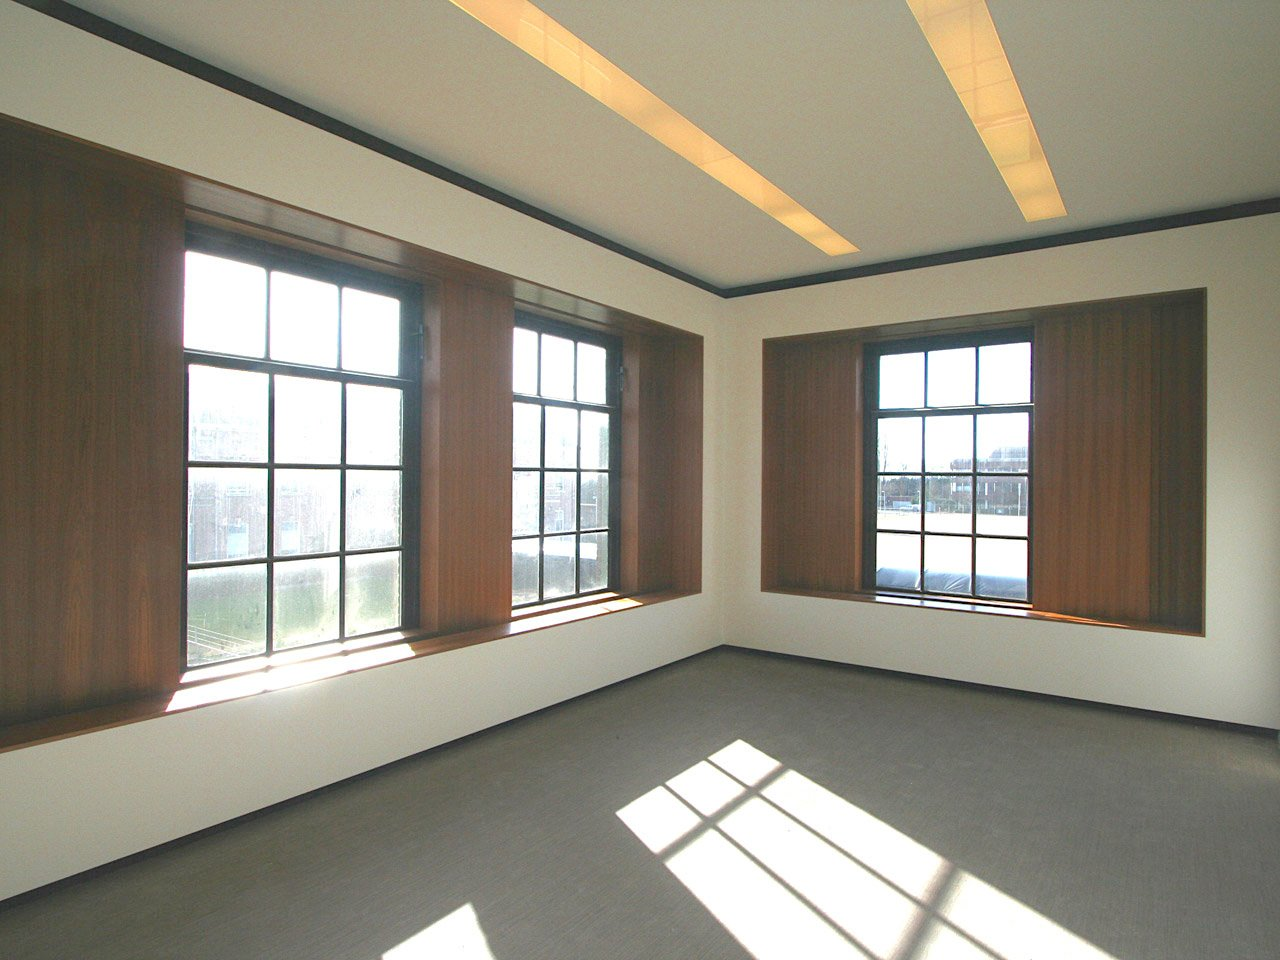 Liong Lie architects Taets interior meeting room wooden sliding window panels